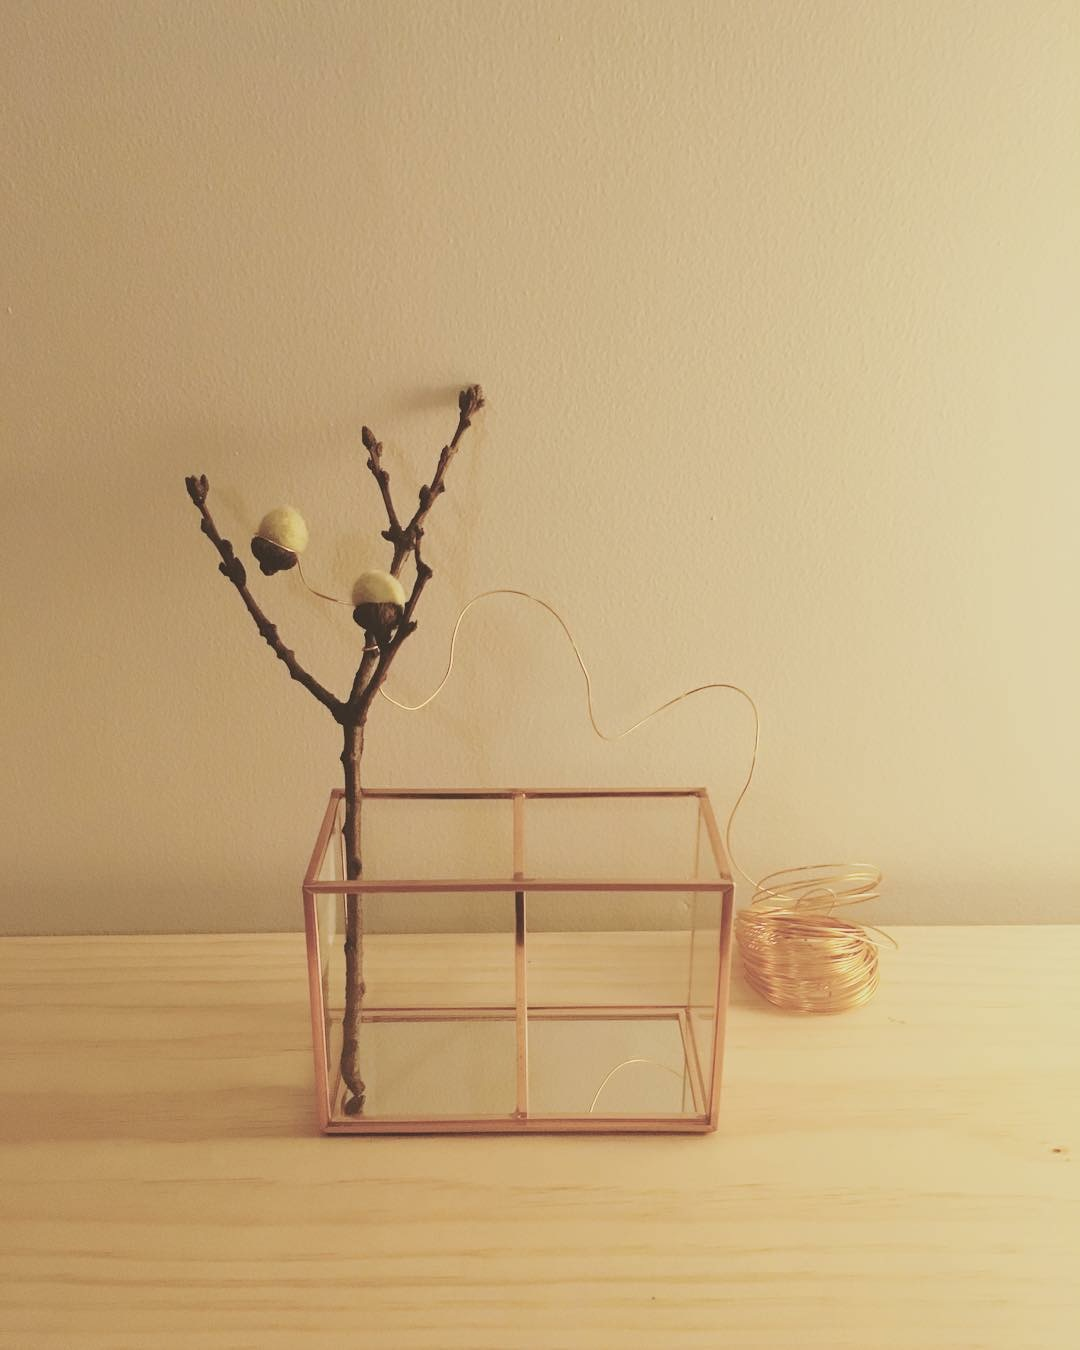 Small branch with wire.